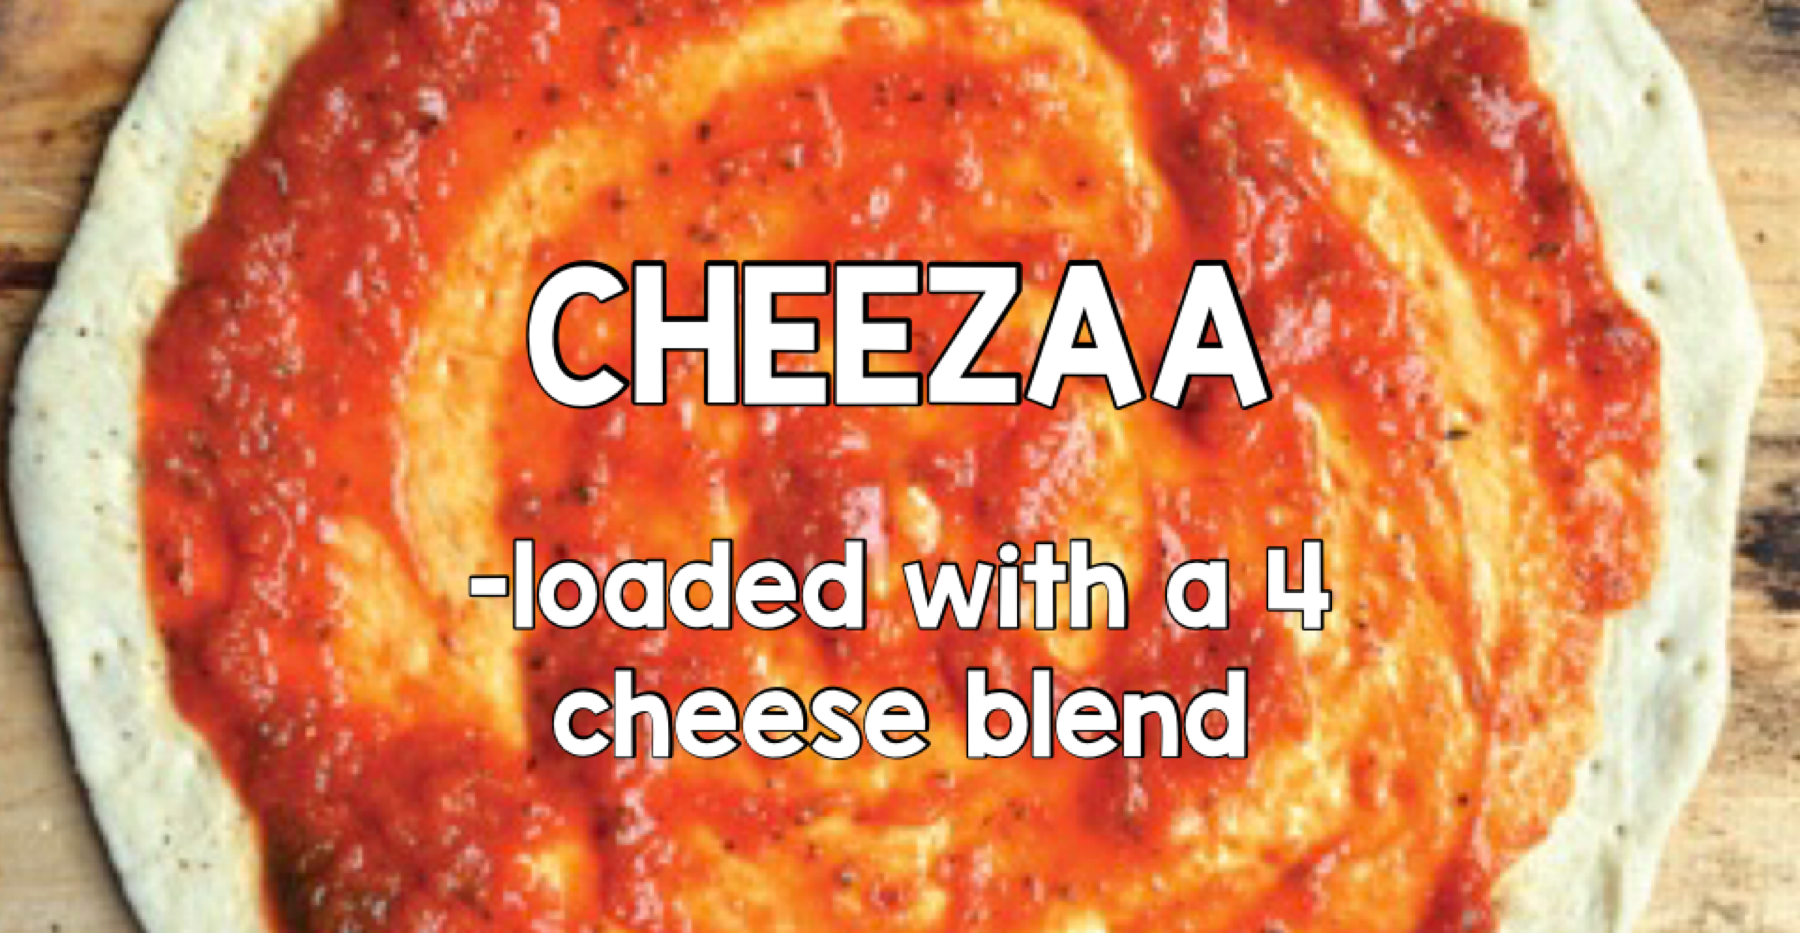 Cheezaa - frozen pizza.png